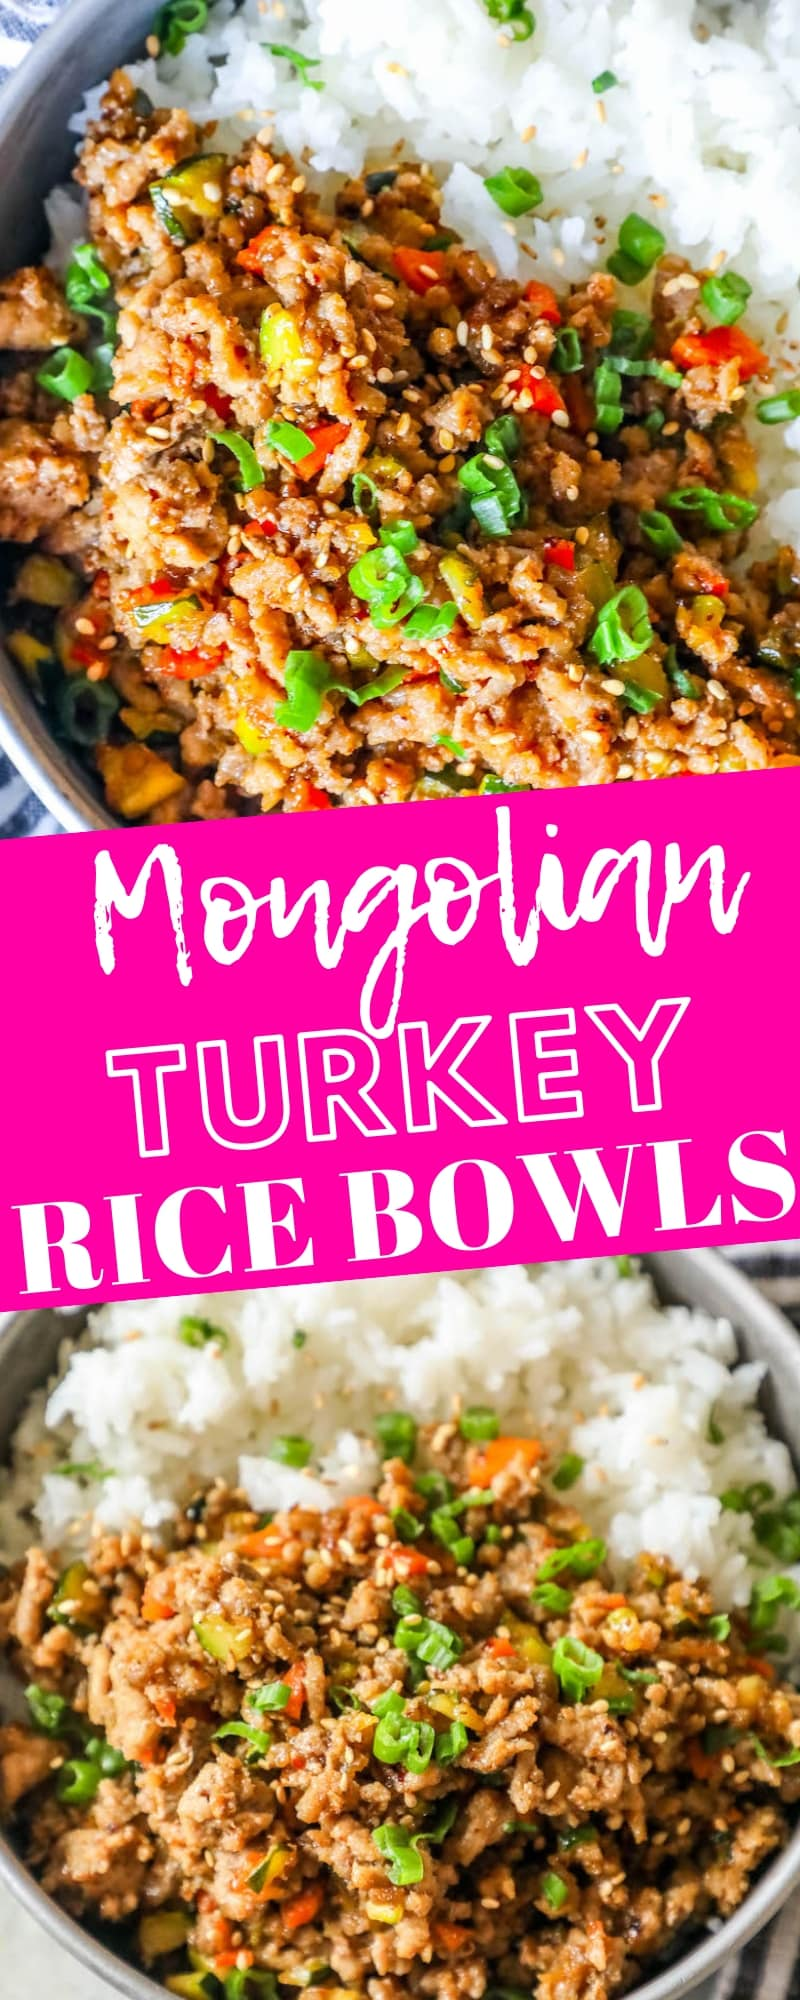 Easy Mongolian Turkey and Rice Bowls Recipe - Sweet Cs Designs